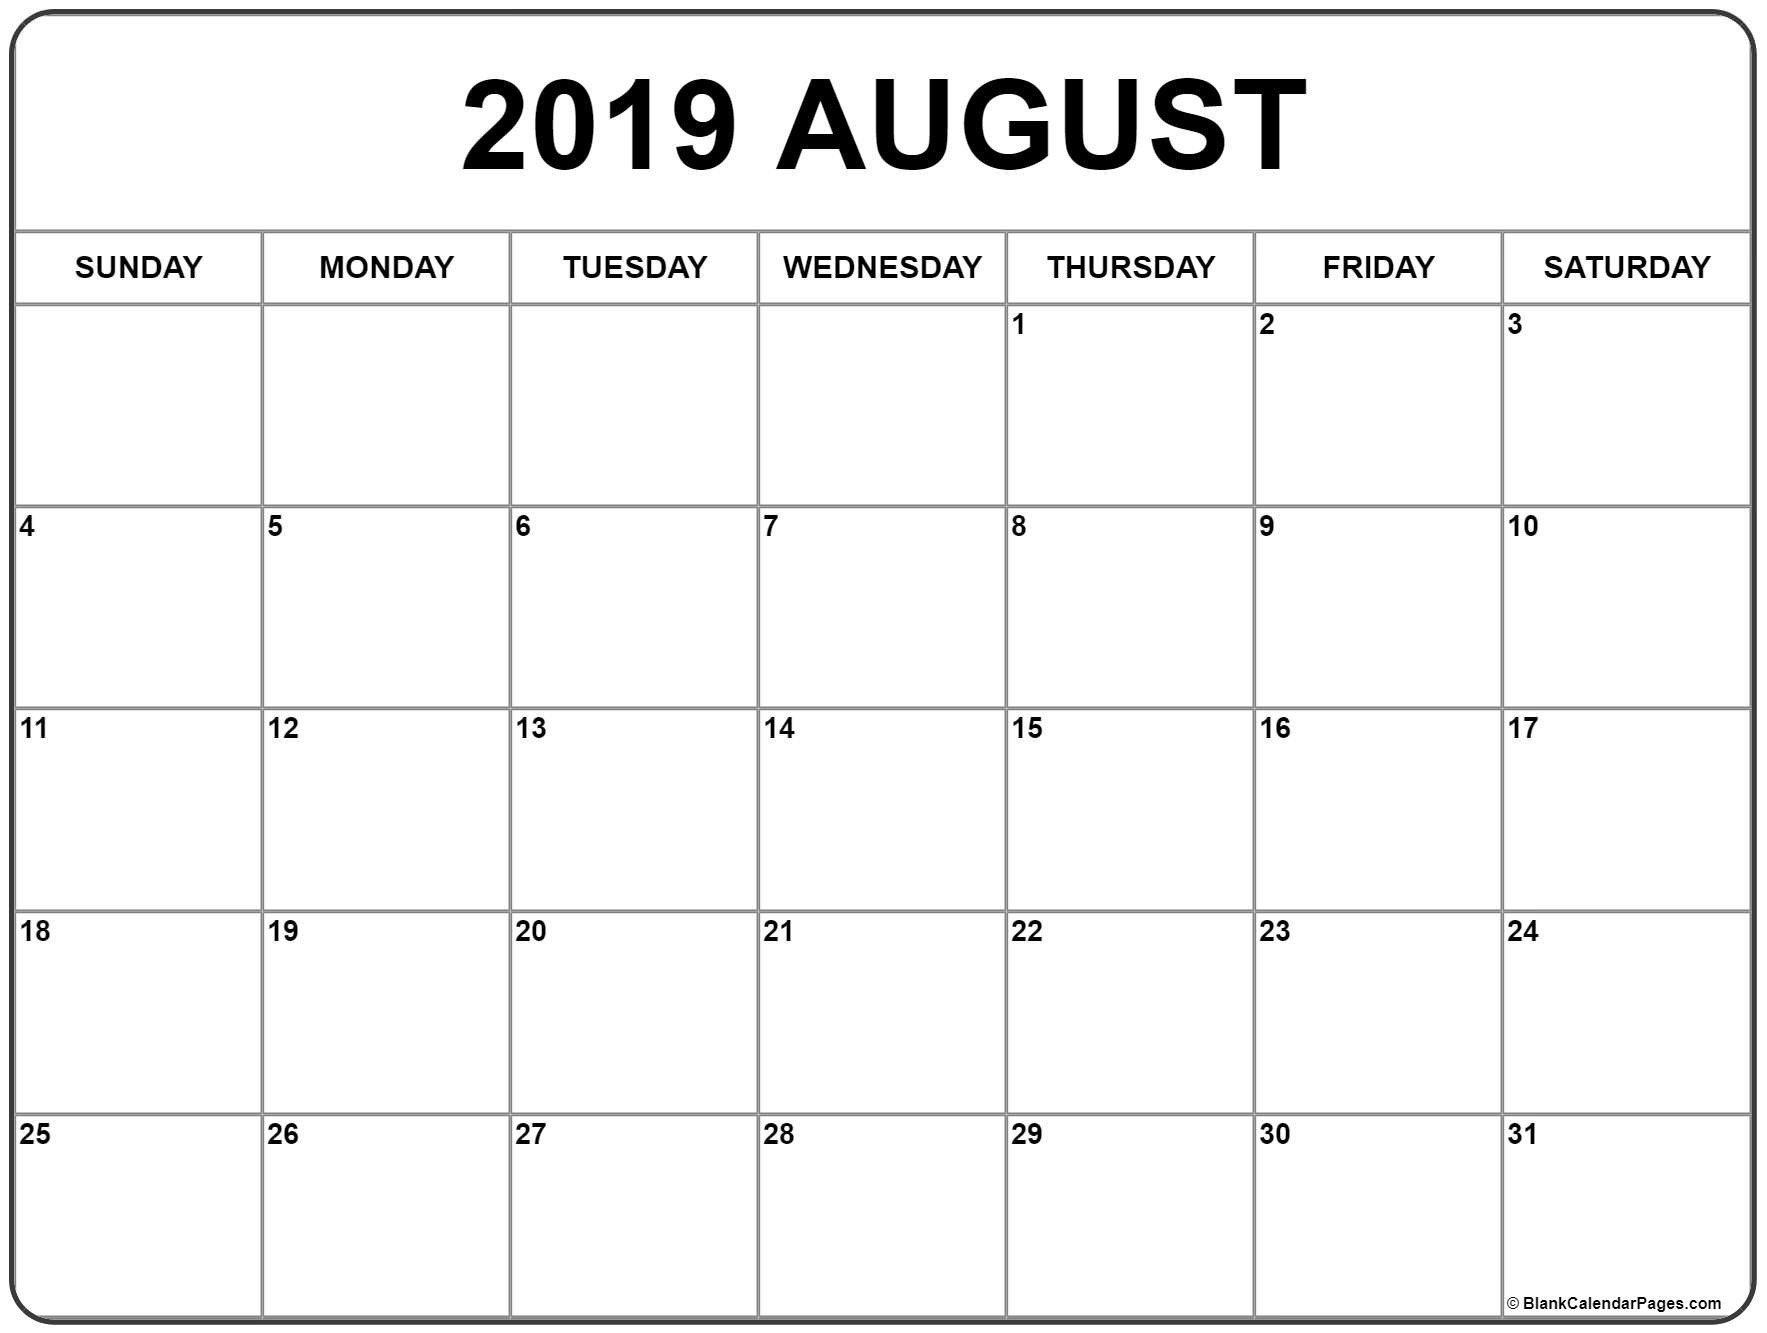 August 2019 Calendar | Free Printable Monthly Calendars  Small August 2020 Calendar